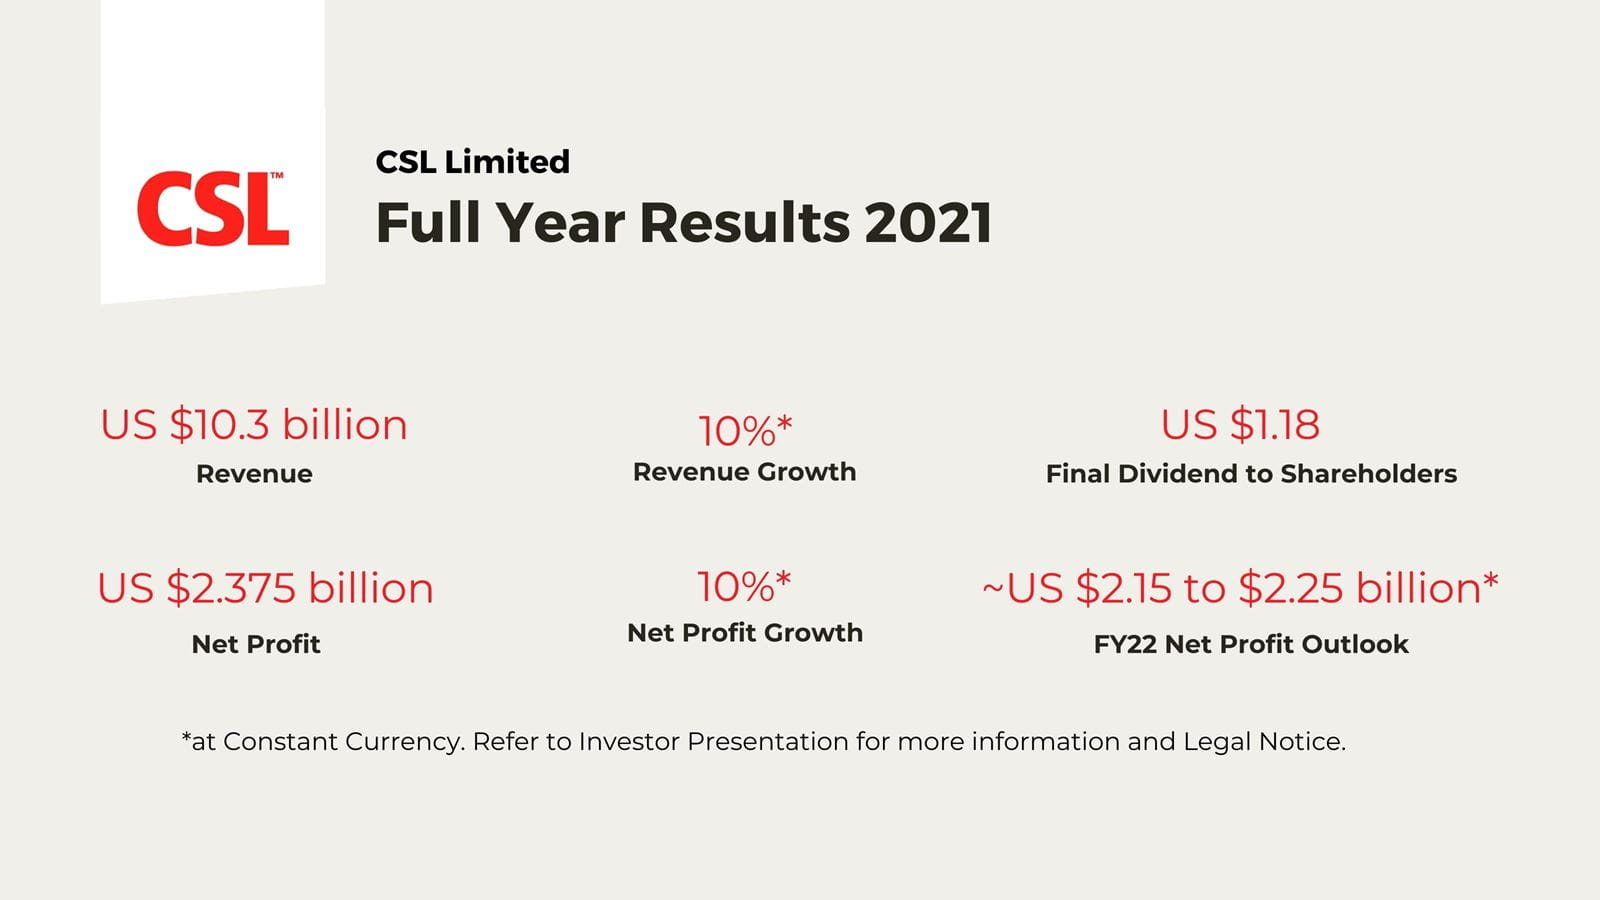 Graphic of CSL Full Year Results 2021